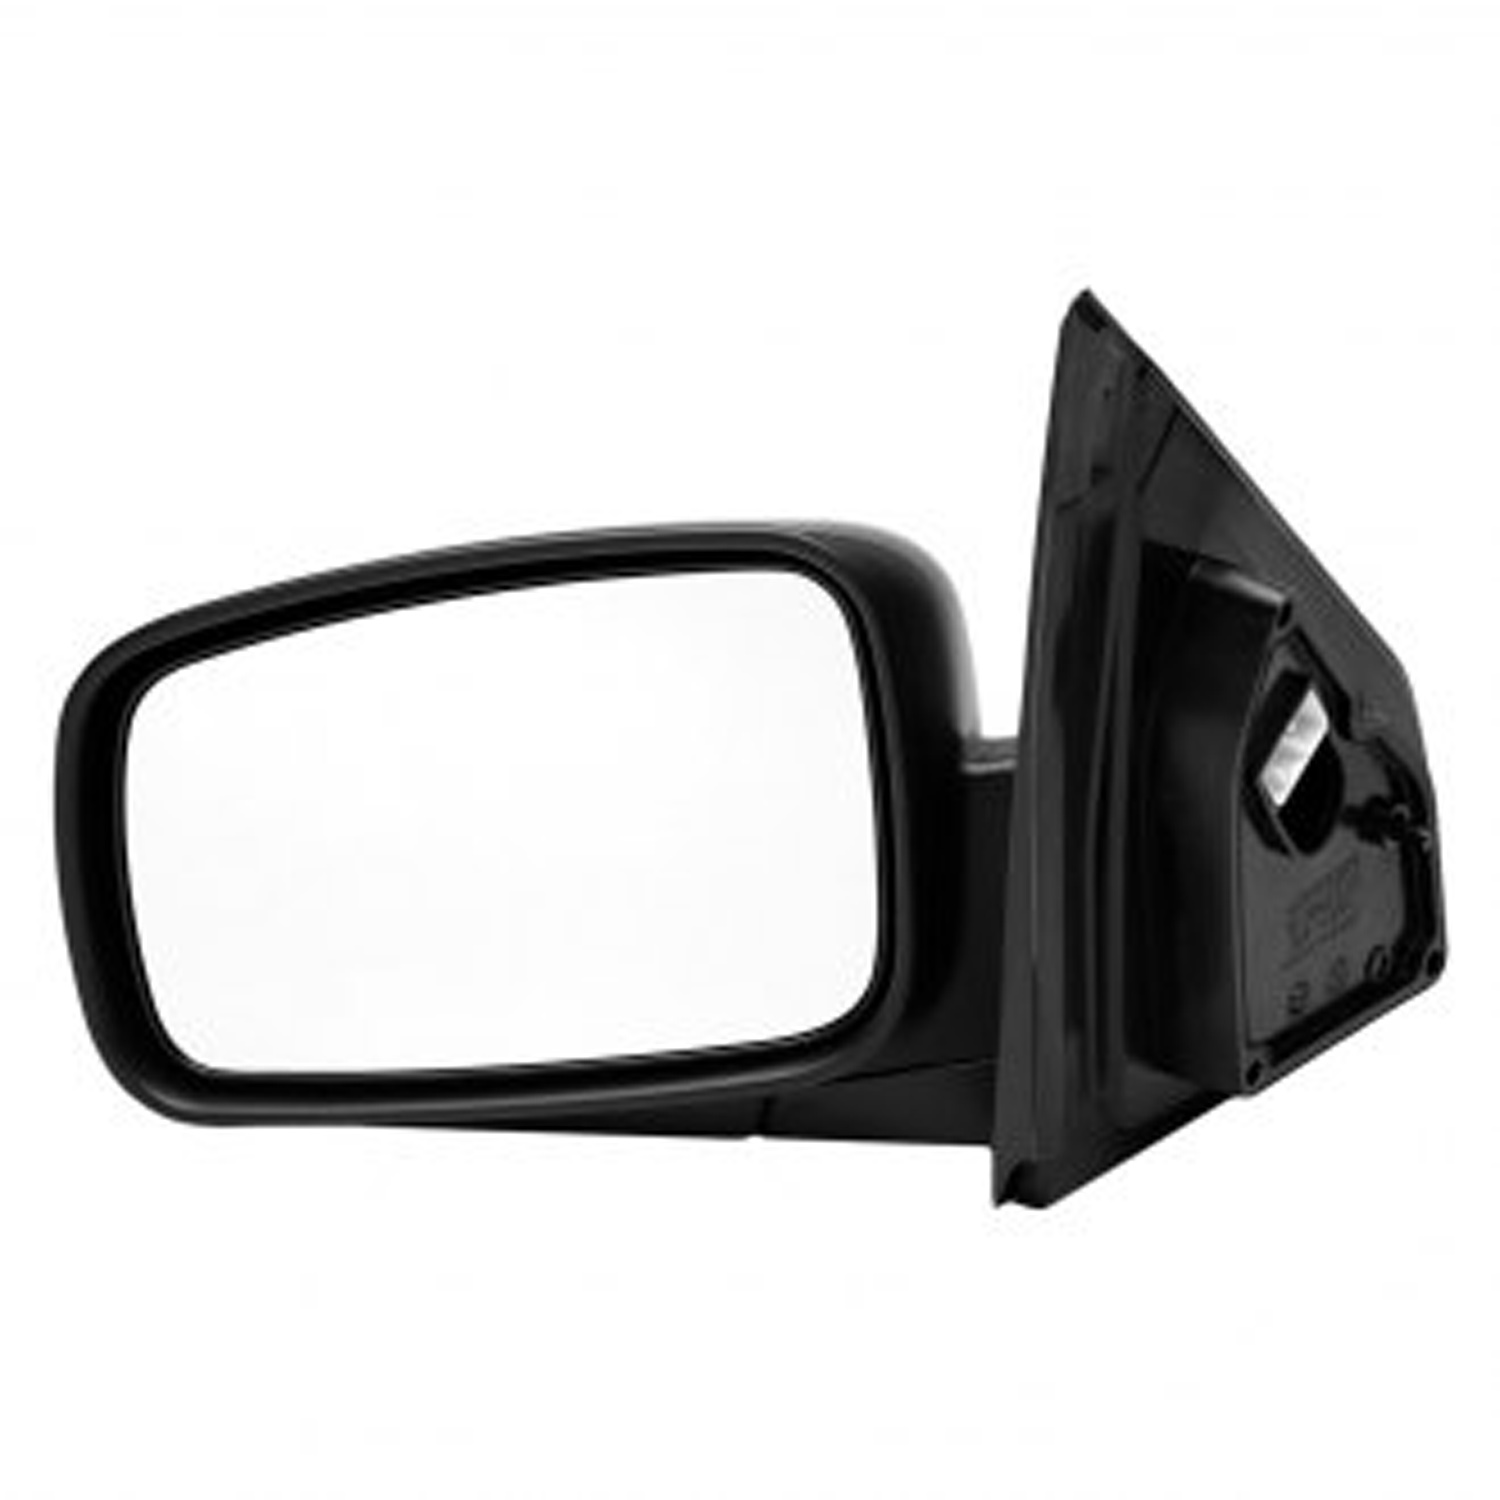 Cpp Replacement Driver Side Door Mirror Ki1320173 For 2011 2013 Kia